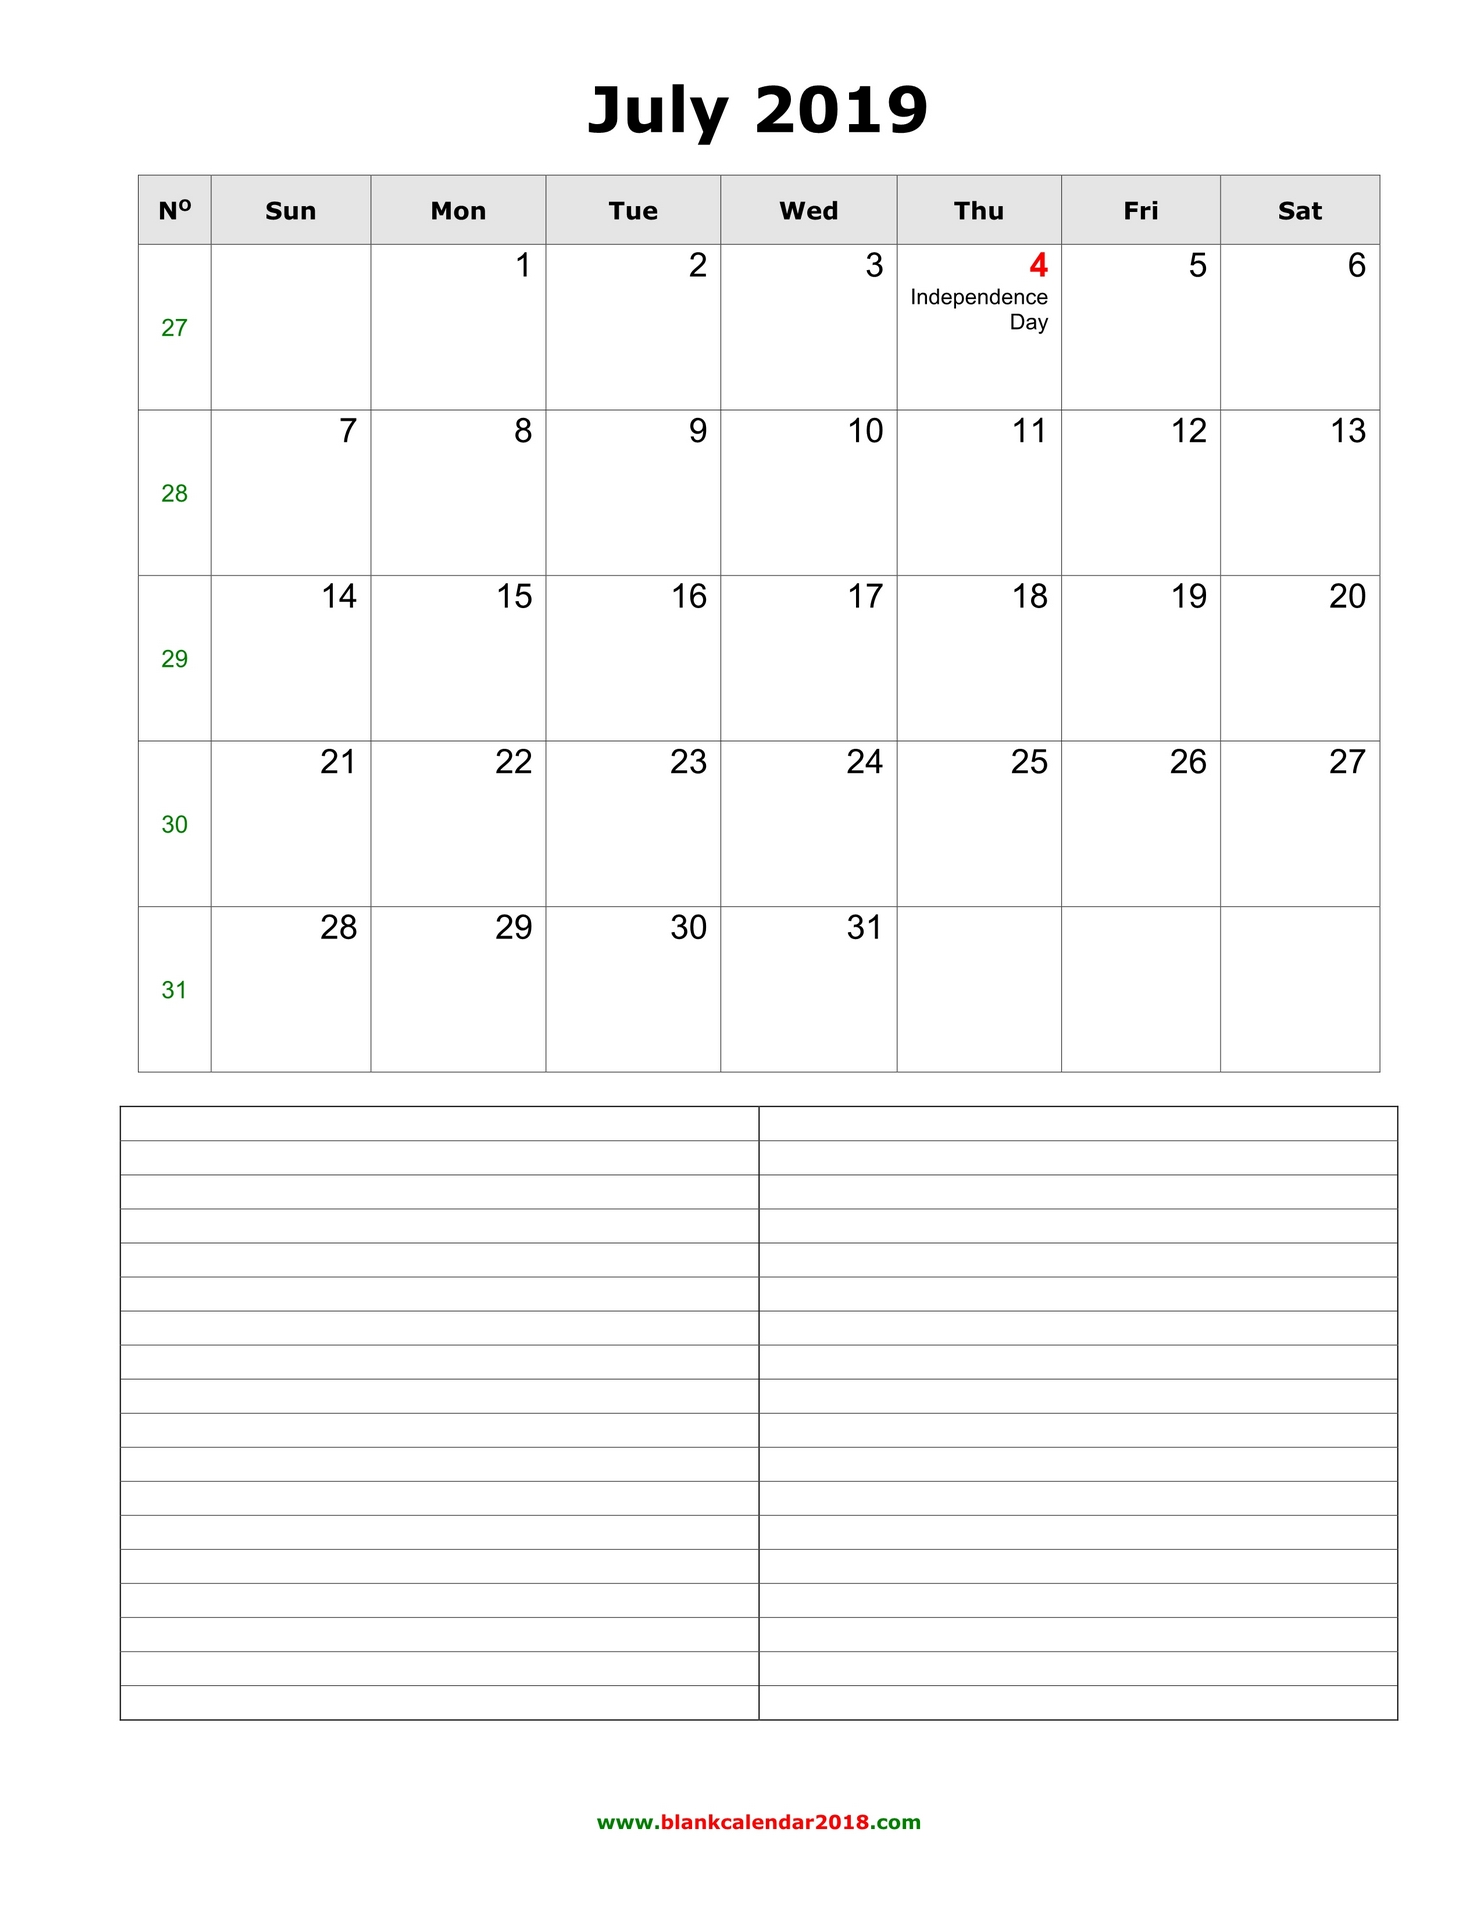 graphic regarding Calendar for July Printable identified as Blank Calendar for July 2019